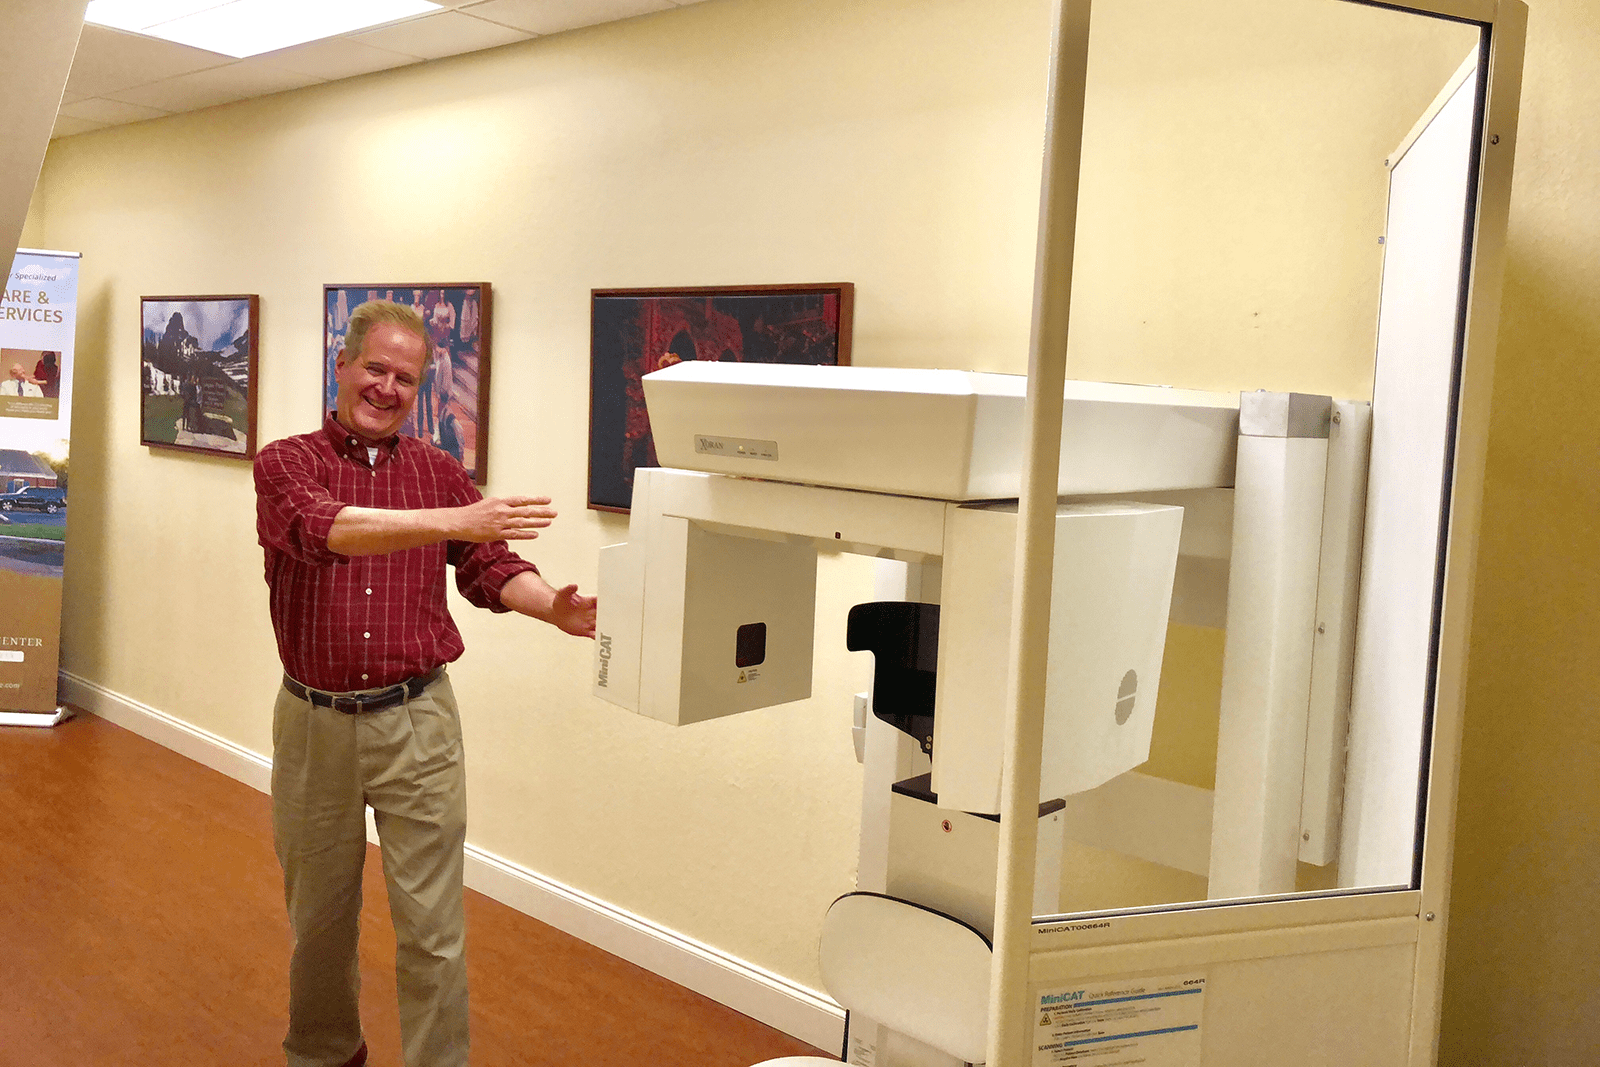 Dr. Michael Riesberg demonstrates his CT Scanner